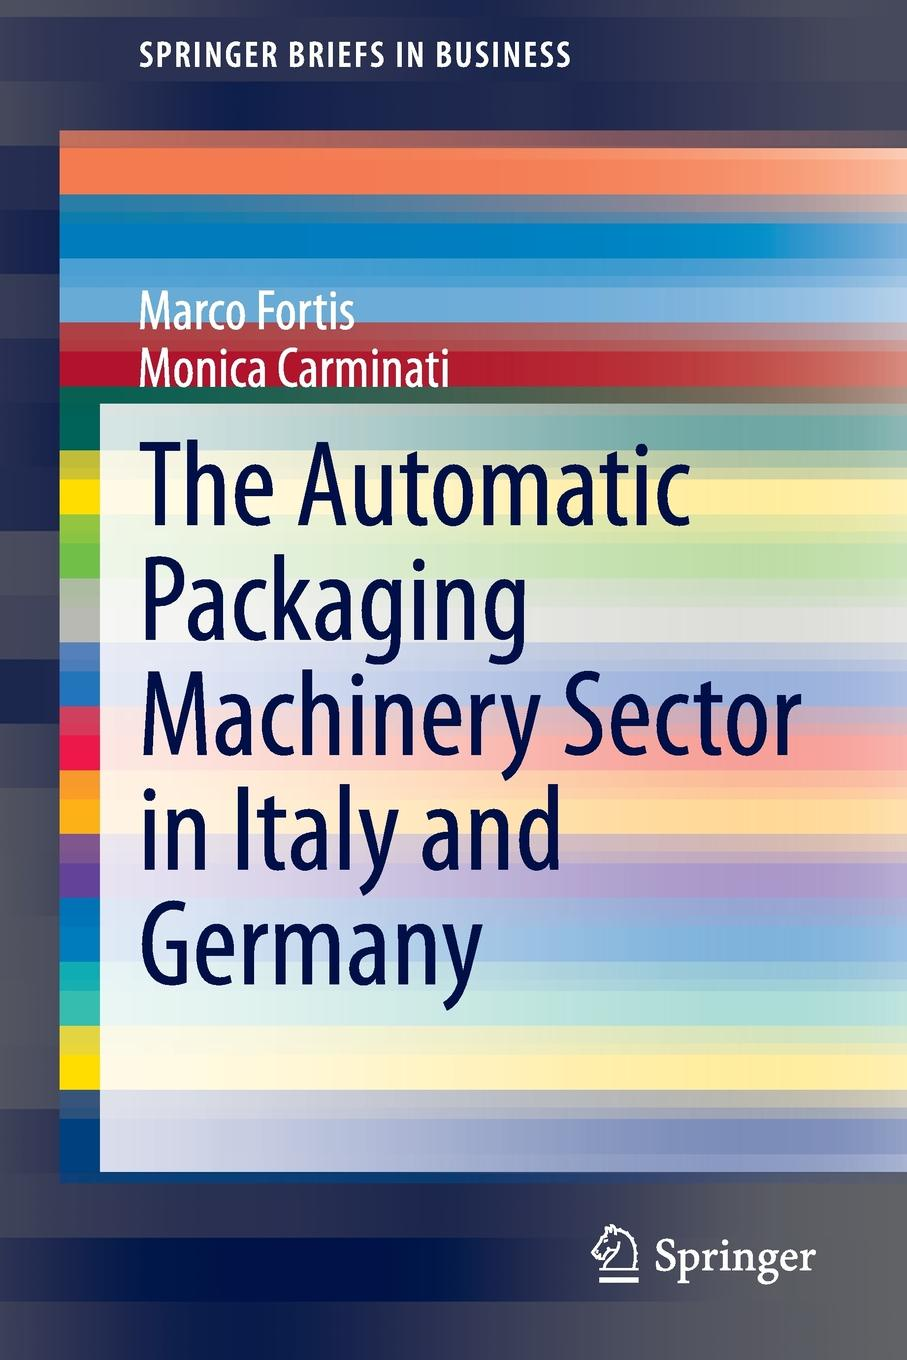 Marco Fortis, Monica Carminati The Automatic Packaging Machinery Sector in Italy and Germany unique packaging